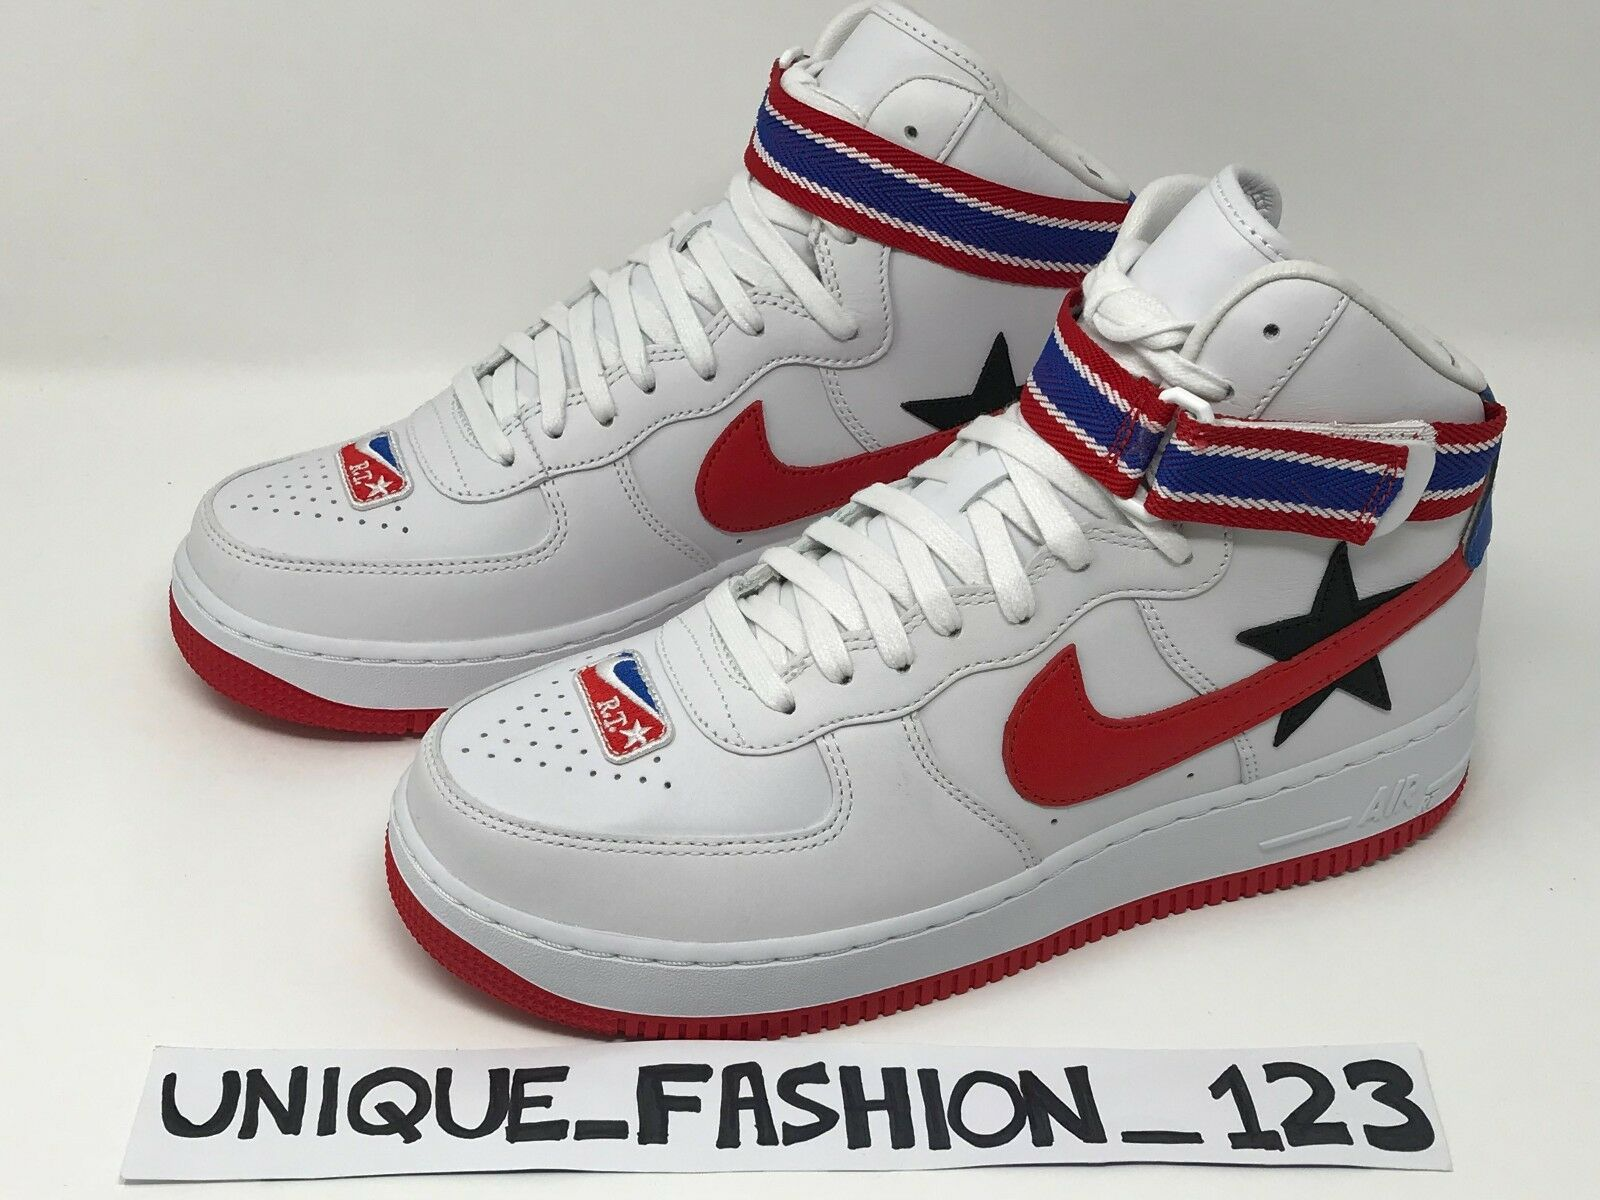 NIKE AIR FORCE 1 HI X RICCARDO TISCI RT 6 7 8 9 10 11 12 AQ3366-100 WHITE RED